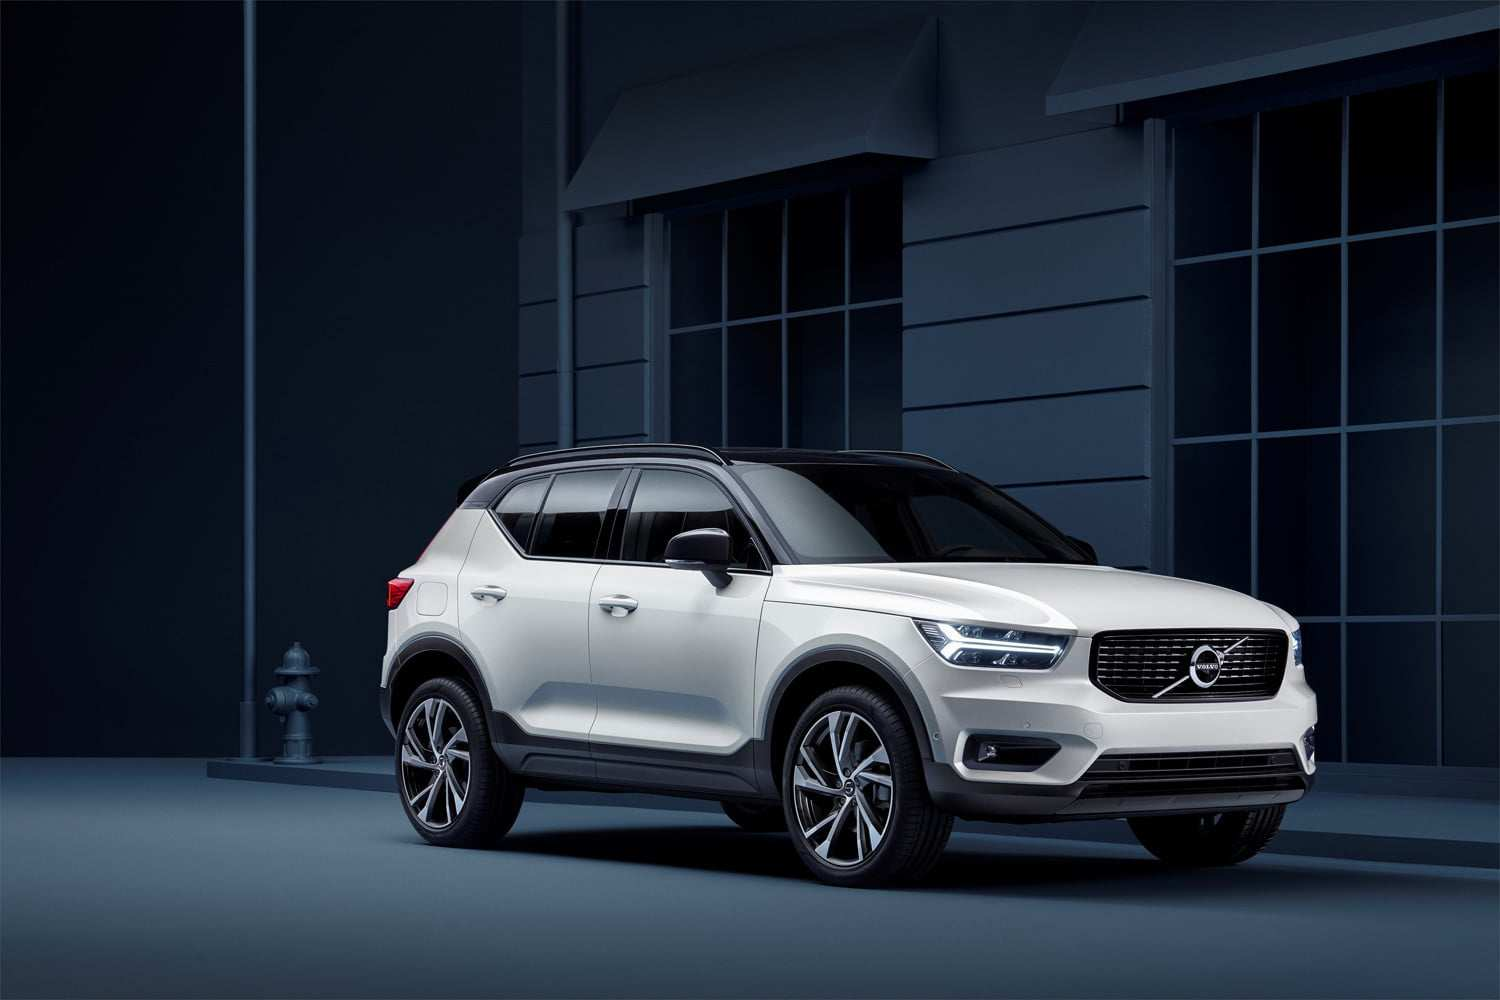 89 The Best Volvo Electric Truck 2020 Release Date